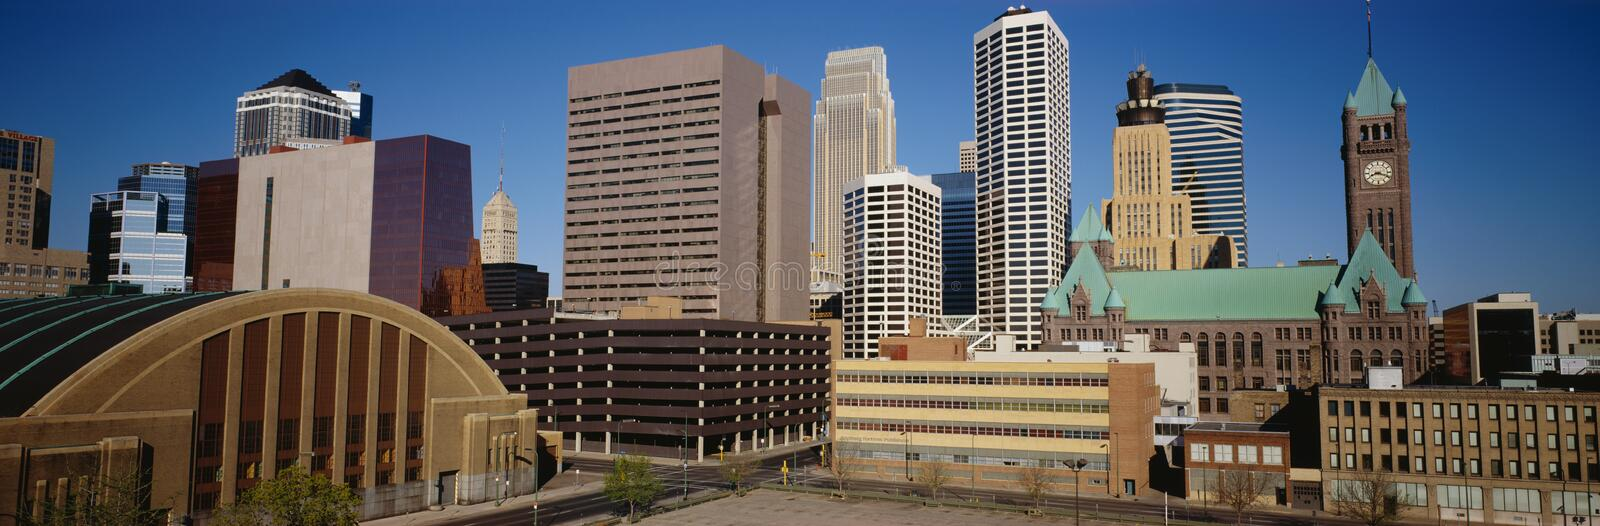 Skyline of Minneapolis royalty free stock images